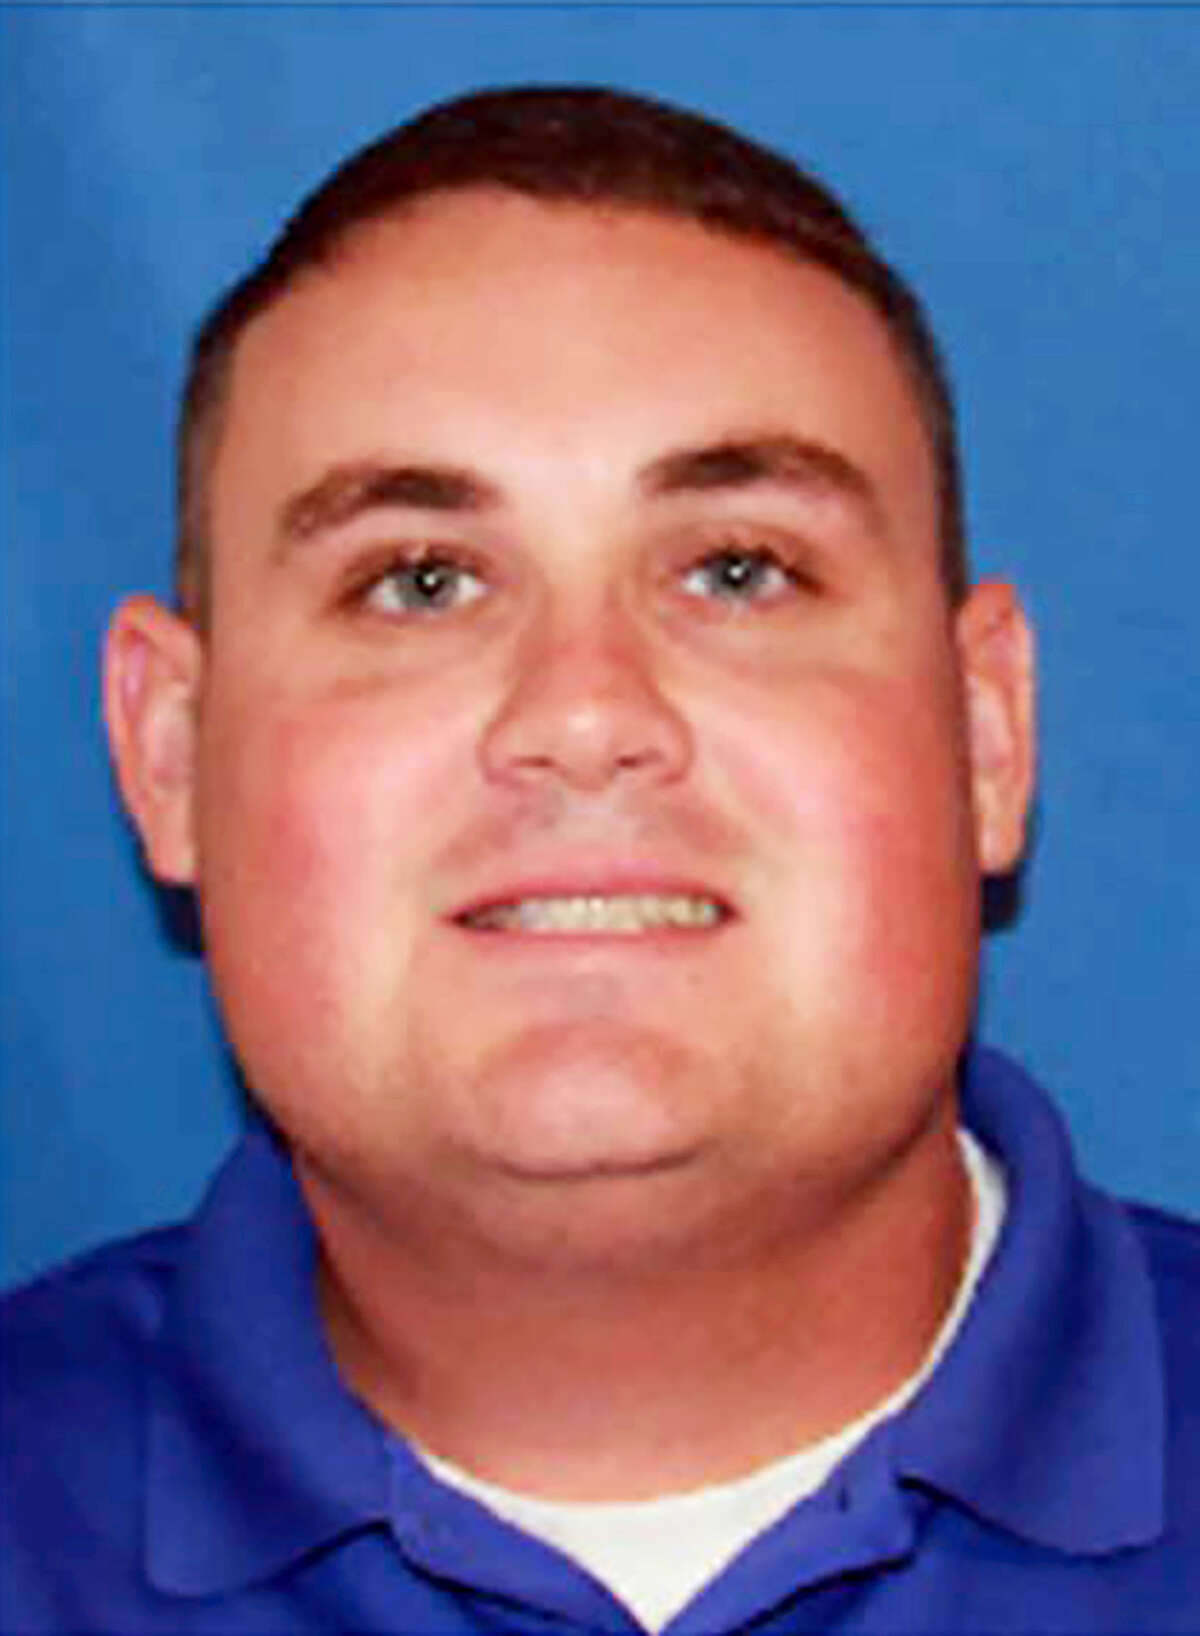 This undated image provided by Georgia Southwestern State University shows campus police officer Jody Smith. The manhunt for 32-year-old Minquell Lembrick ended a Thursday, Dec. 8, 2016, they day after the alleged gunman killed Americus police Officer Nicholas Smarr and Officer Jody Smith of Georgia Southwestern State University. Both officers were shot as they responded to a domestic disturbance call in Americus, a rural city 130 miles south of Atlanta.